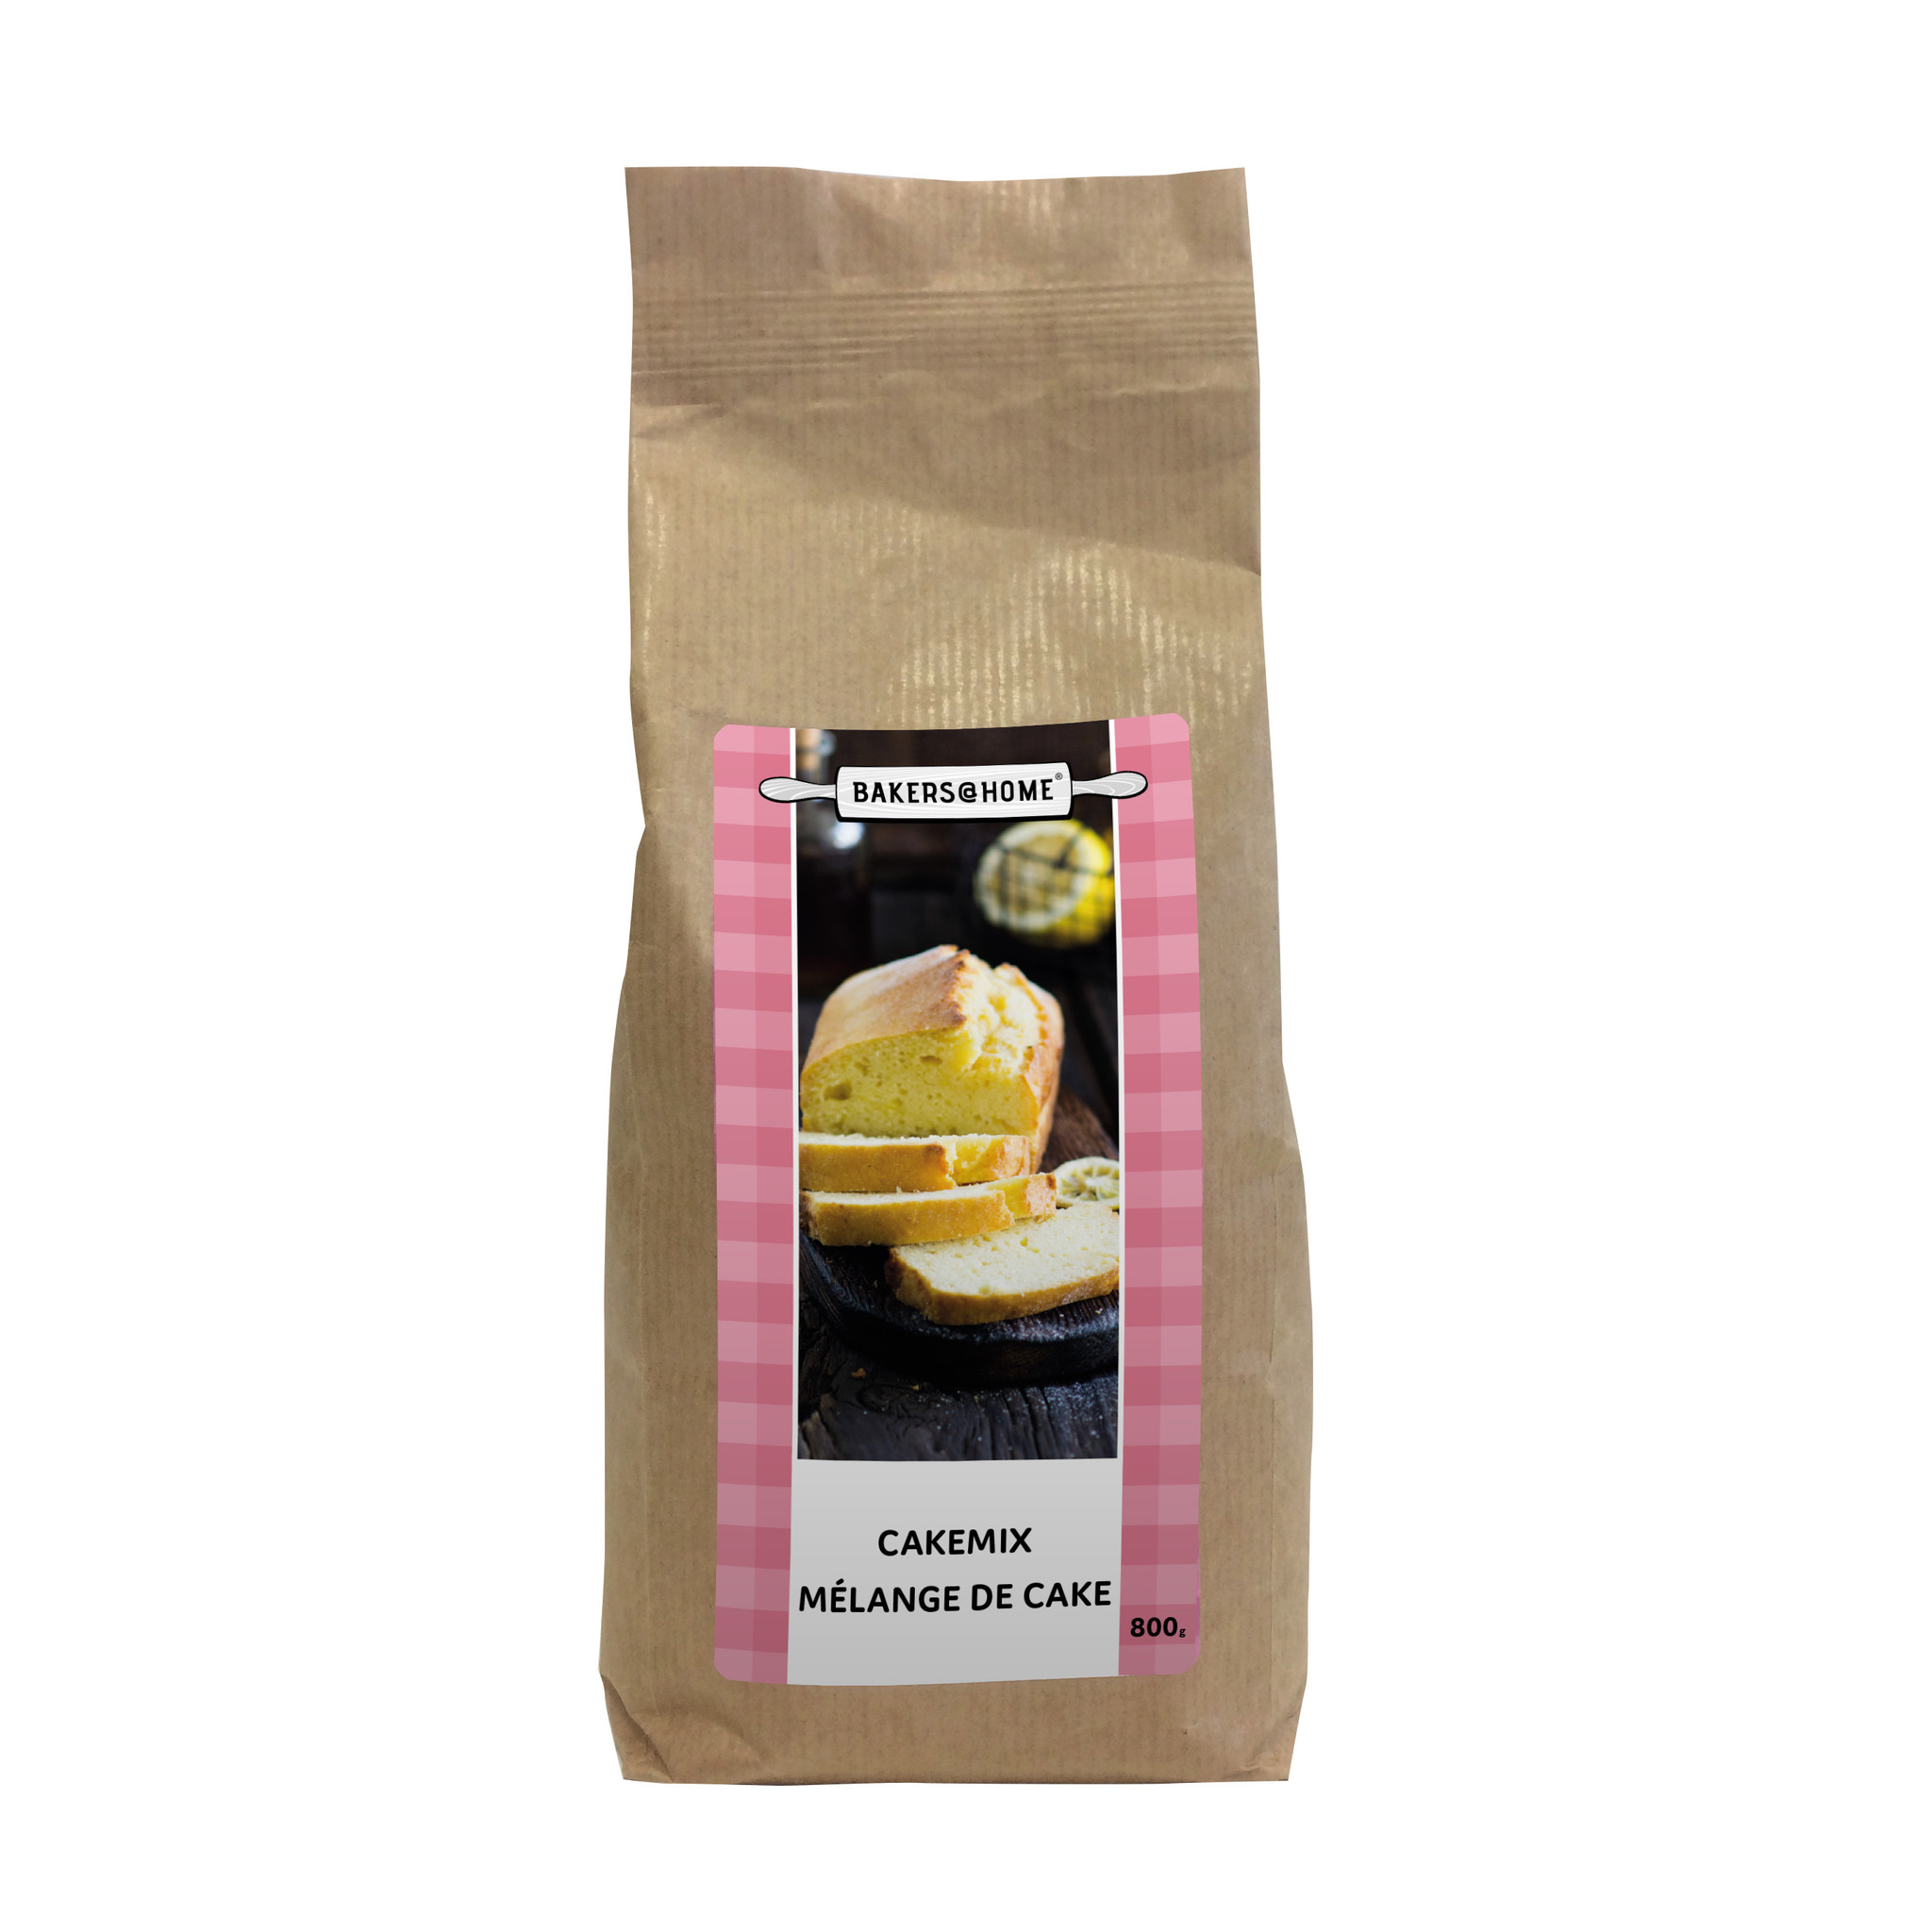 Bakers@Home Cake mix